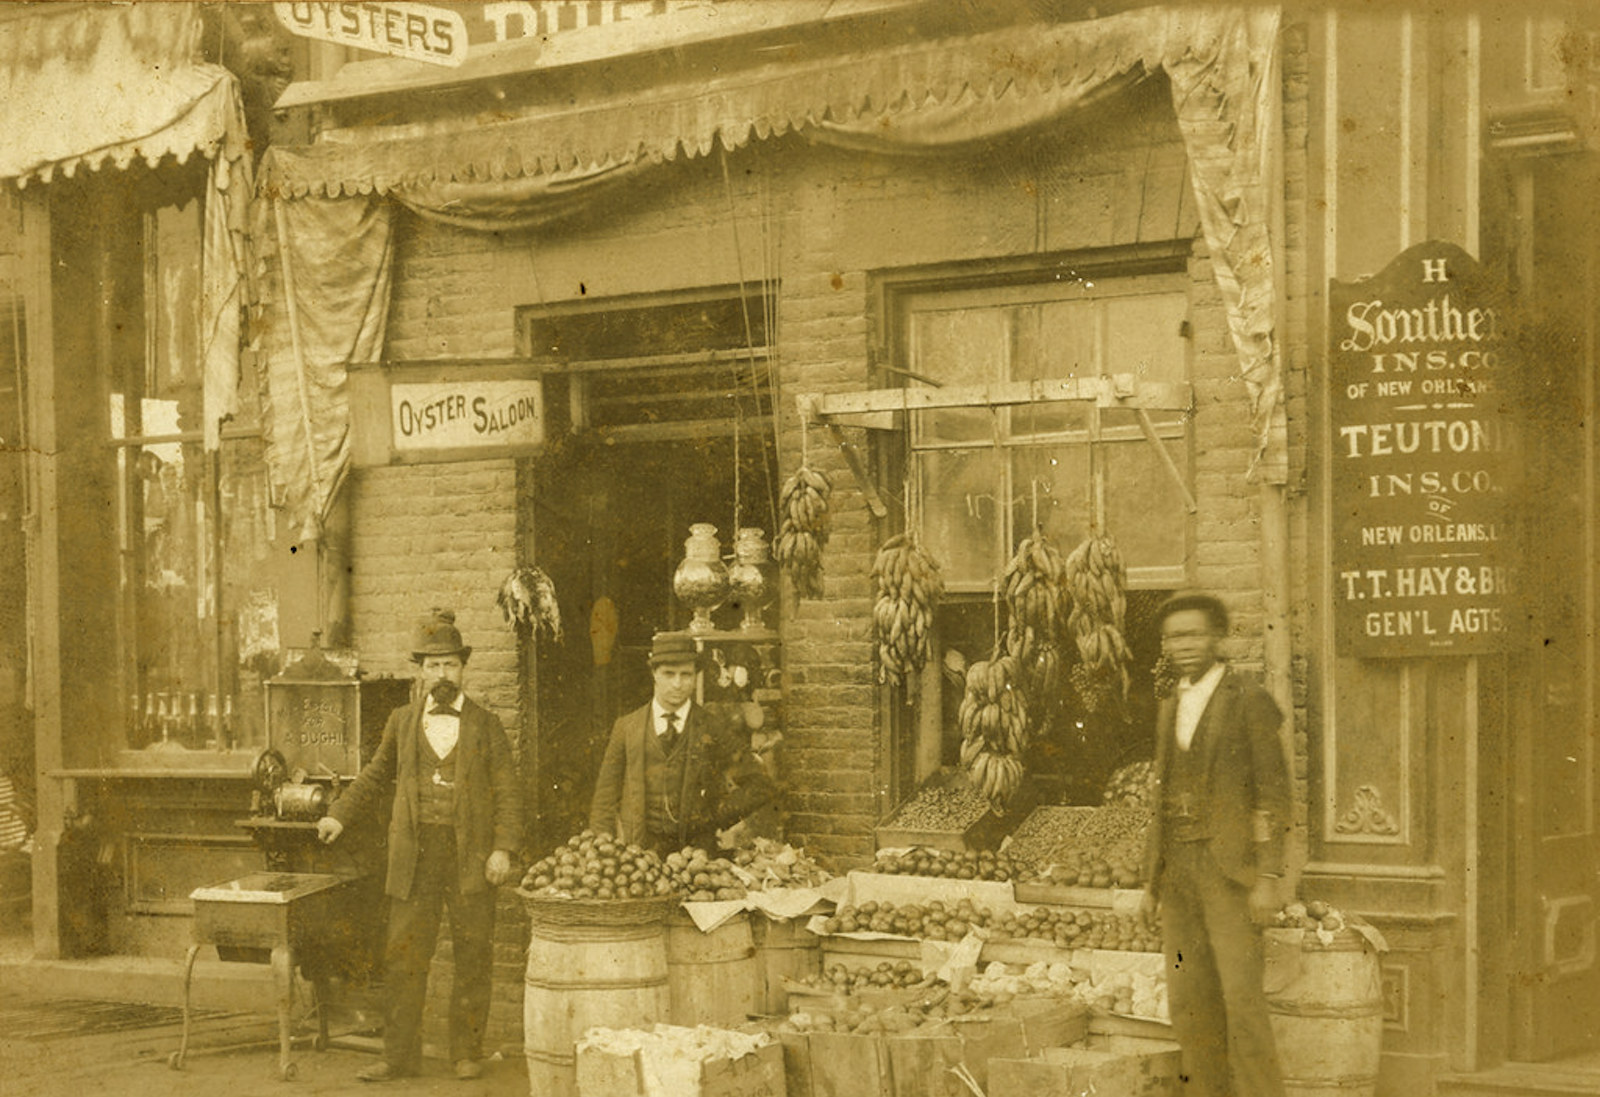 Like many 19th century groceries, the Dughi Store at 235 Fayetteville Street in Raleigh featured an oyster saloon